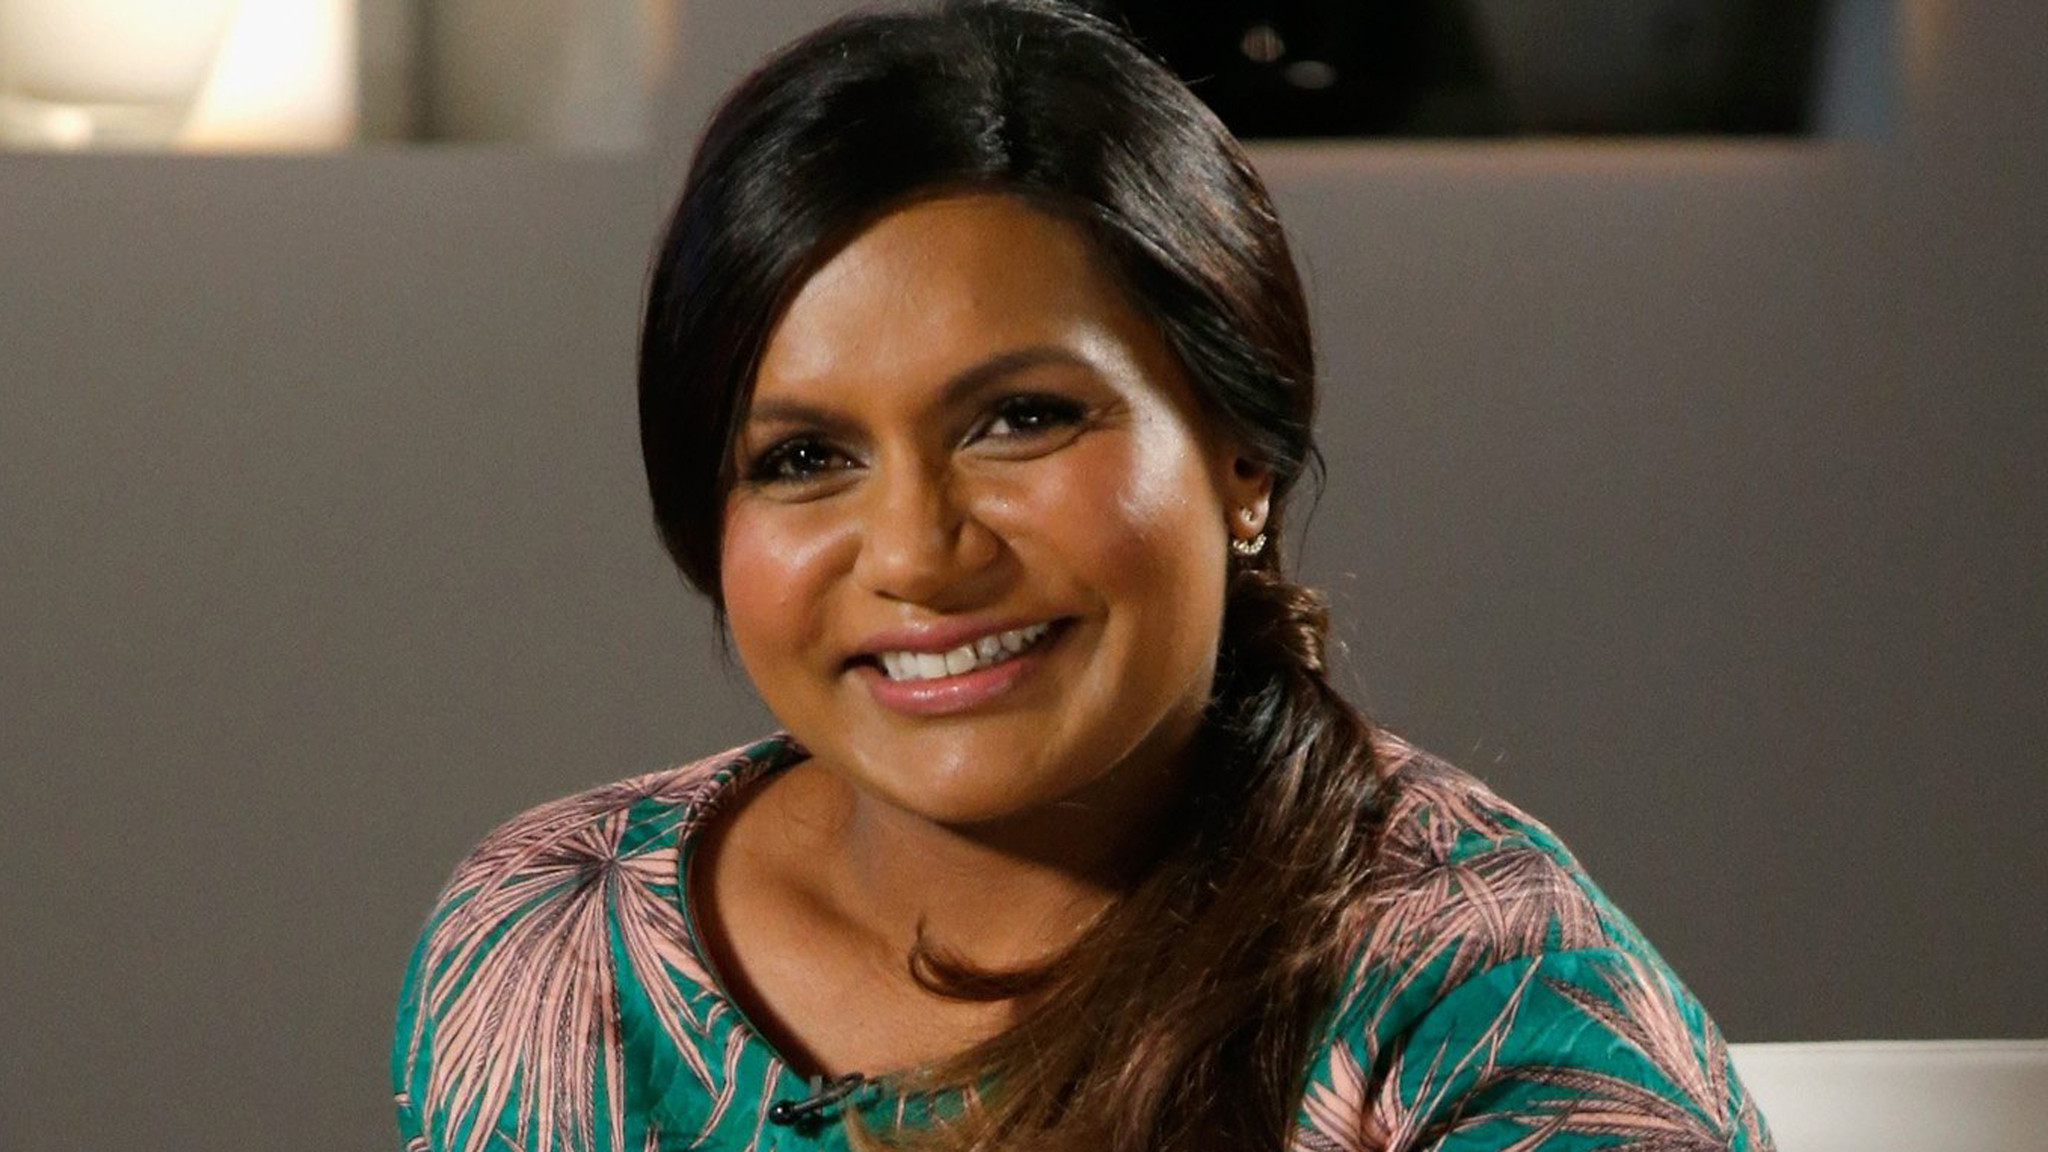 Mindy Kaling Wallpapers Images Photos Pictures Backgrounds 2048x1152